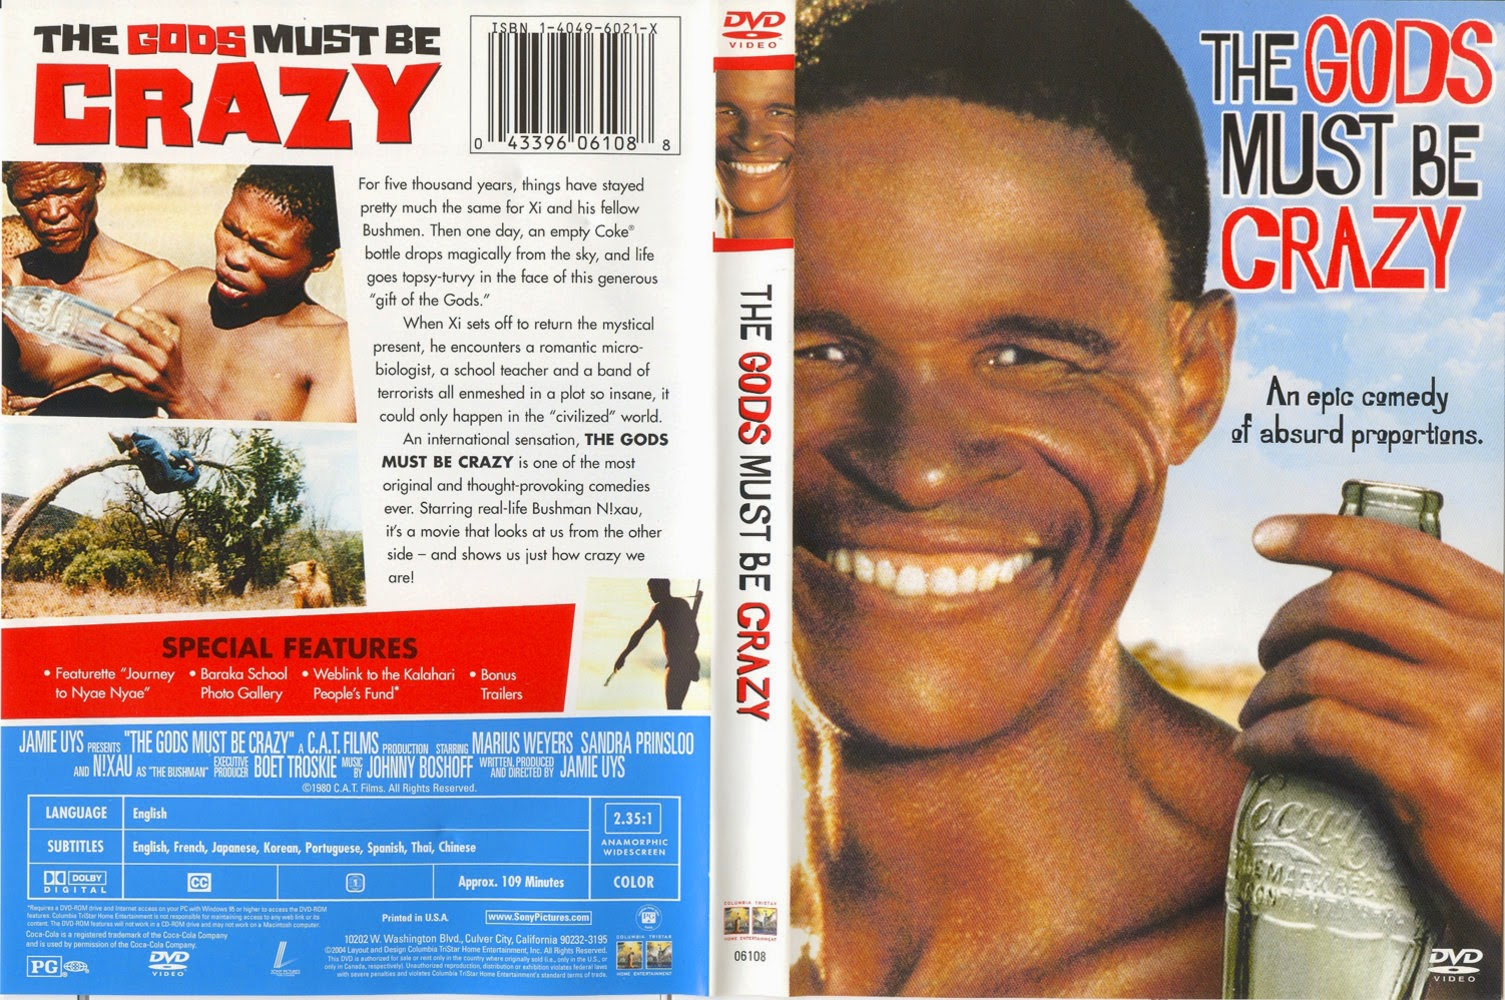 the god must be crazy movie The gods must be crazy is a series of films starring the namibian san farmer and actor nǃxau ǂtoma.